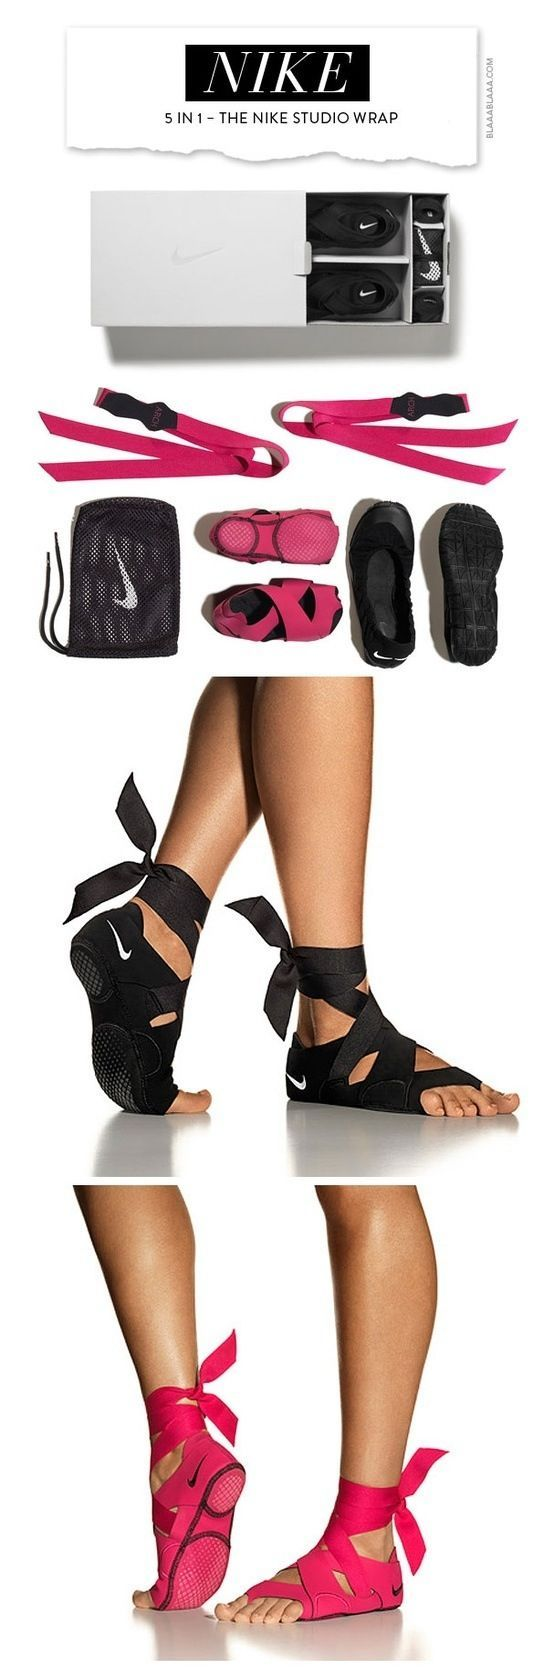 Fitness tools nike studio wraps - Best 25 Nike Studio Wrap Ideas On Pinterest Yoga Shoes Dance Shoes And Barefoot Shoes